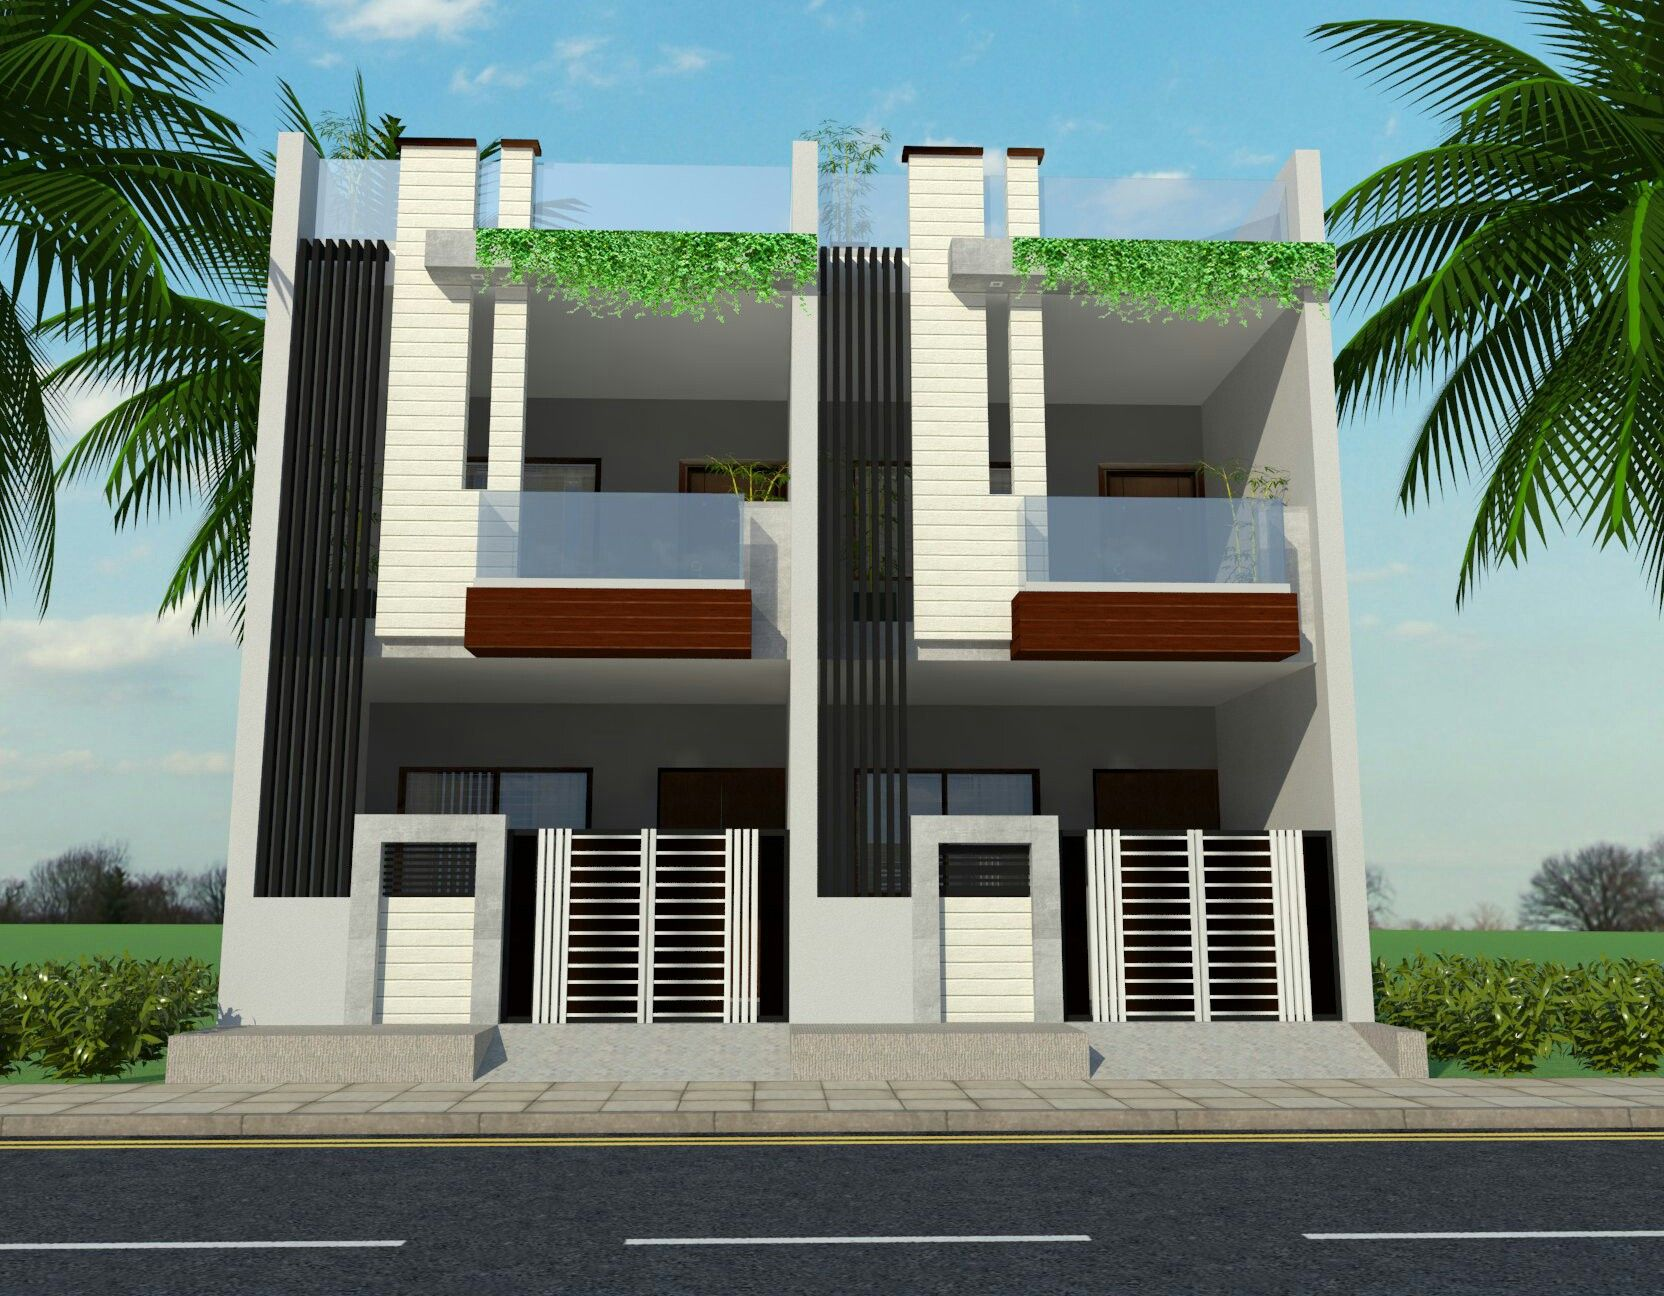 Ground Floor Villa Elevation : Row house ground first floor elevation modern